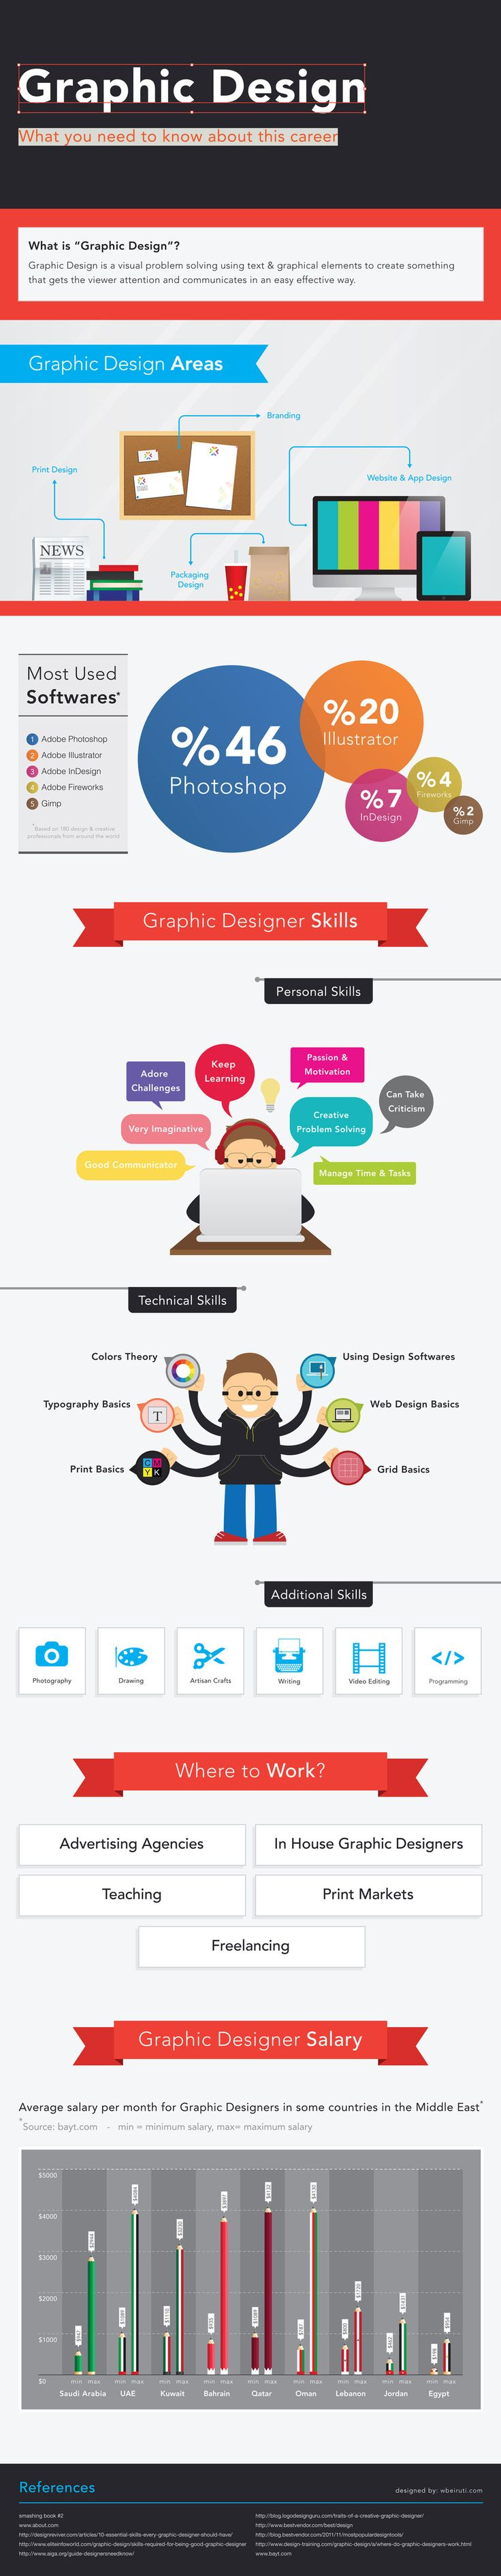 Graphic Design - What you need to know about this career -Graphic Design Infographic by ~wbeiruti on deviantART